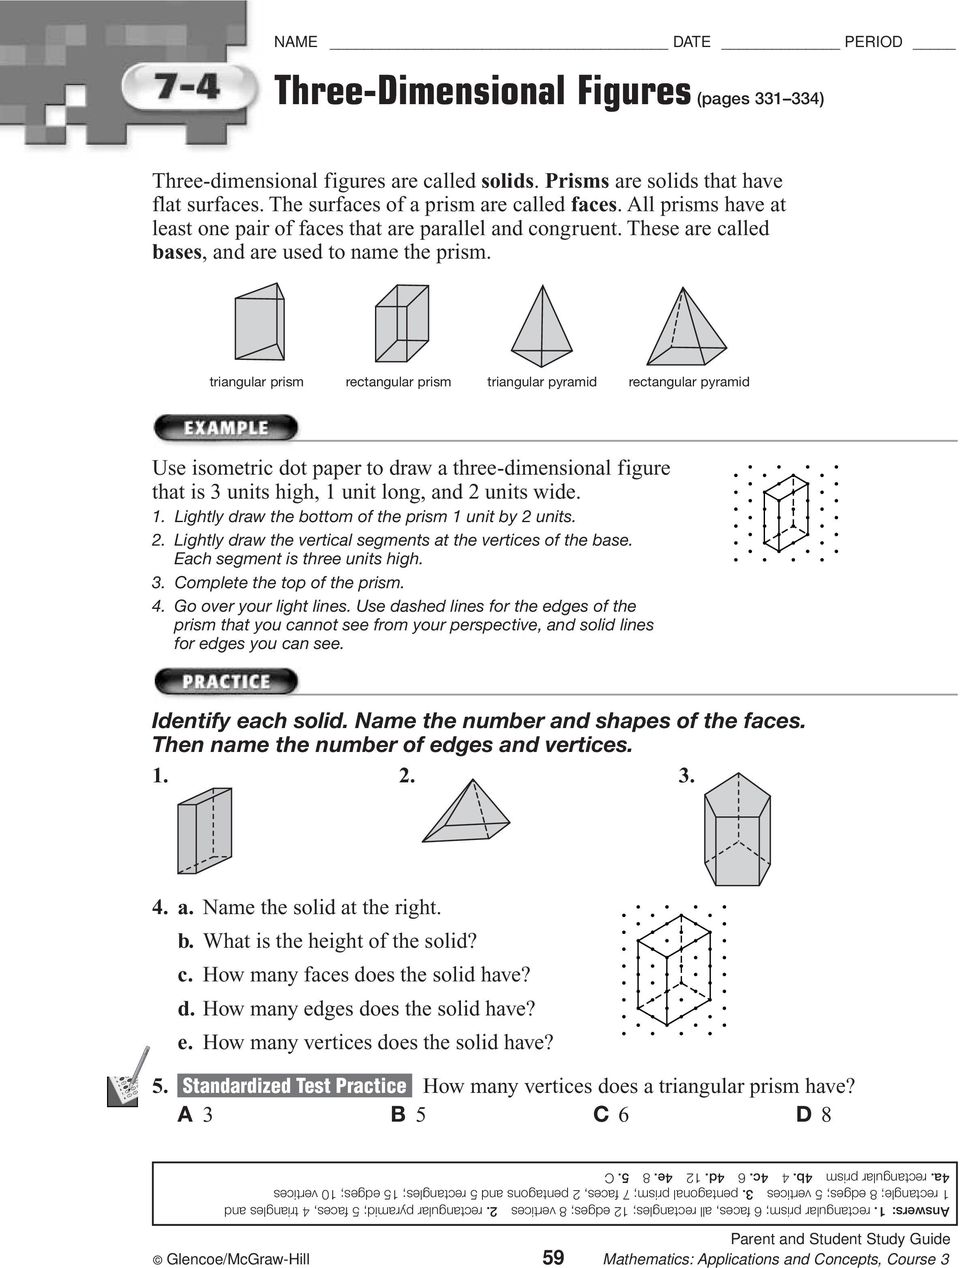 triangular prism rectangular prism triangular pyramid rectangular pyramid Use isometric dot paper to draw a three-dimensional figure that is 3 units high, unit long, and 2 units wide.